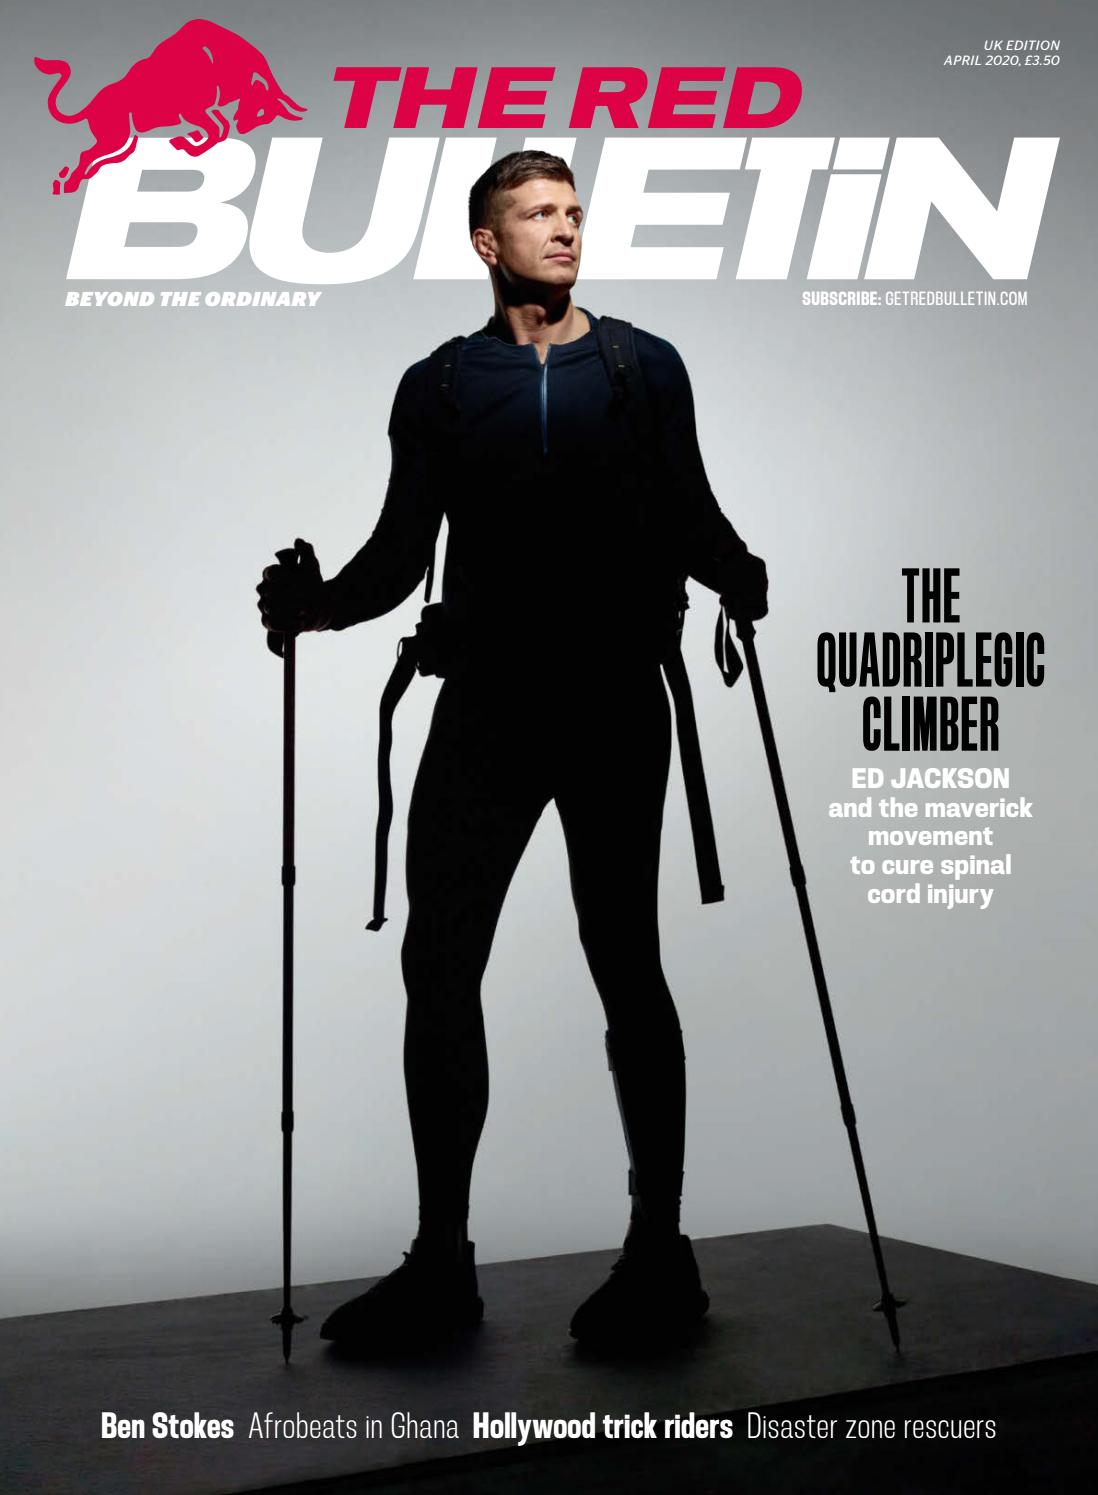 The Red Bulletin Uk 04 20 By Red Bull Media House Issuu